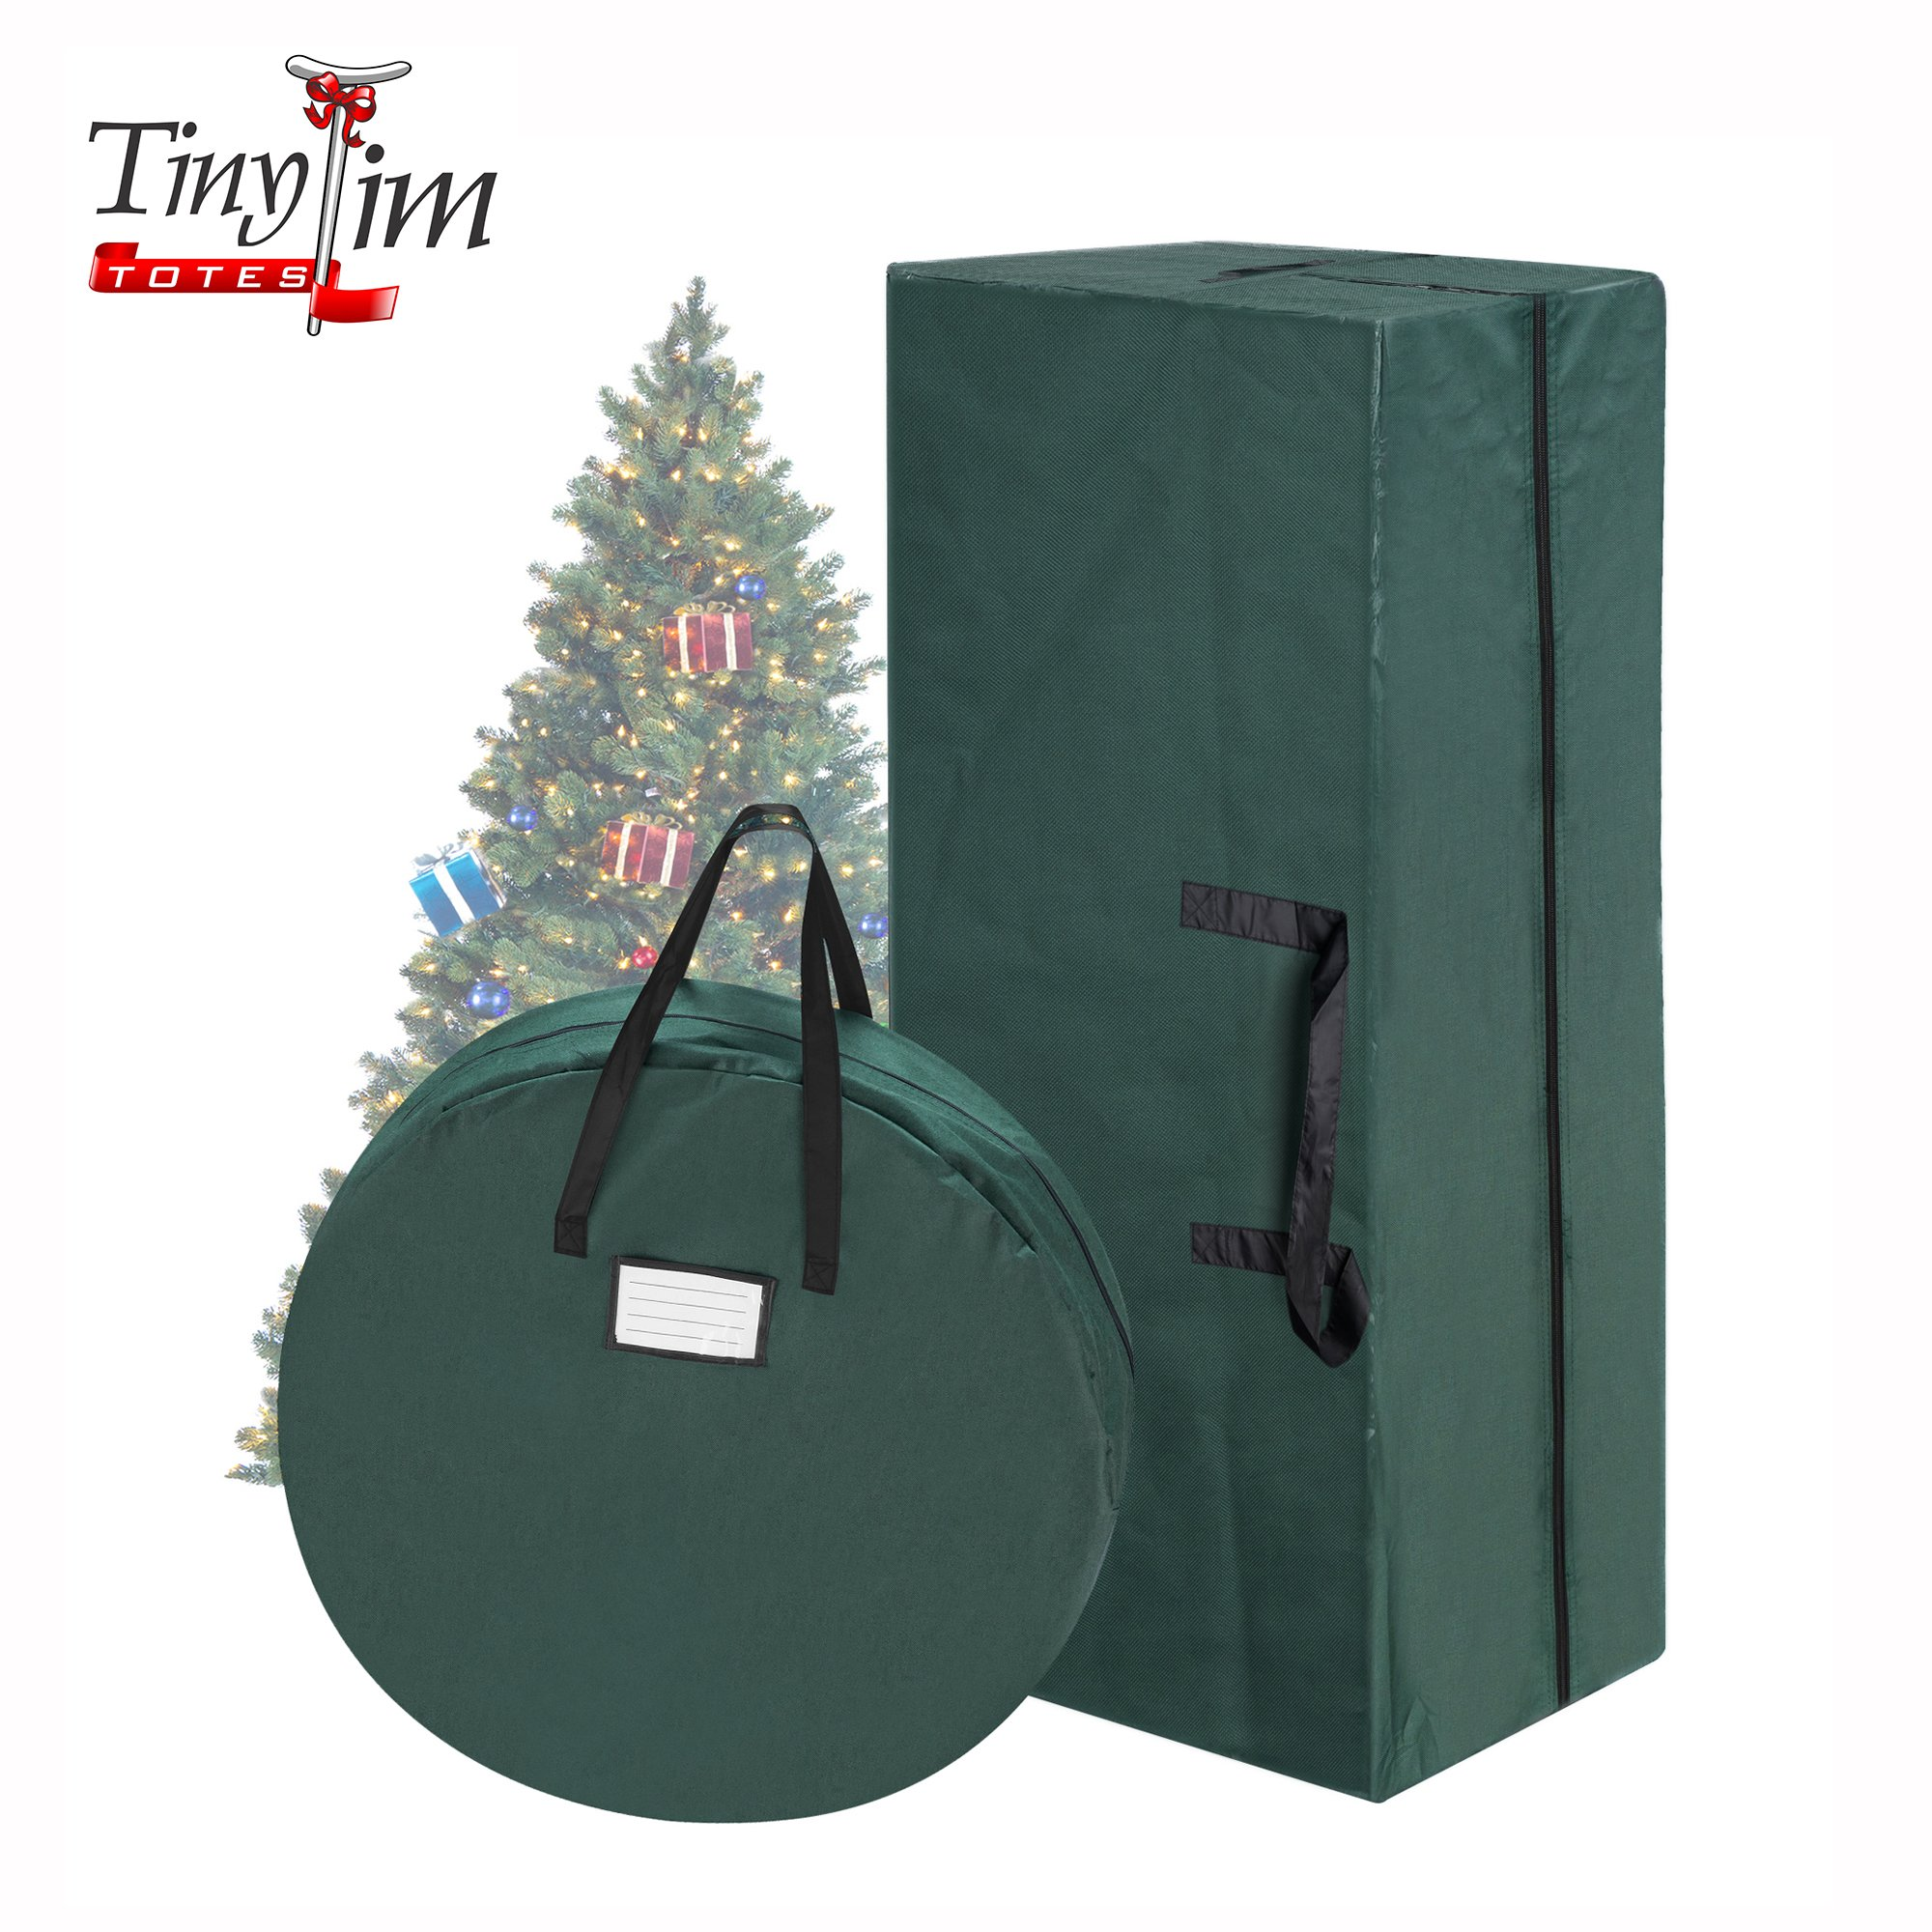 Tiny Tim Totes 83-DT5571 Premium Combo | Christmas Storage 10 Foot Artificial Tree and 30 Inch Wreath Bag, Green